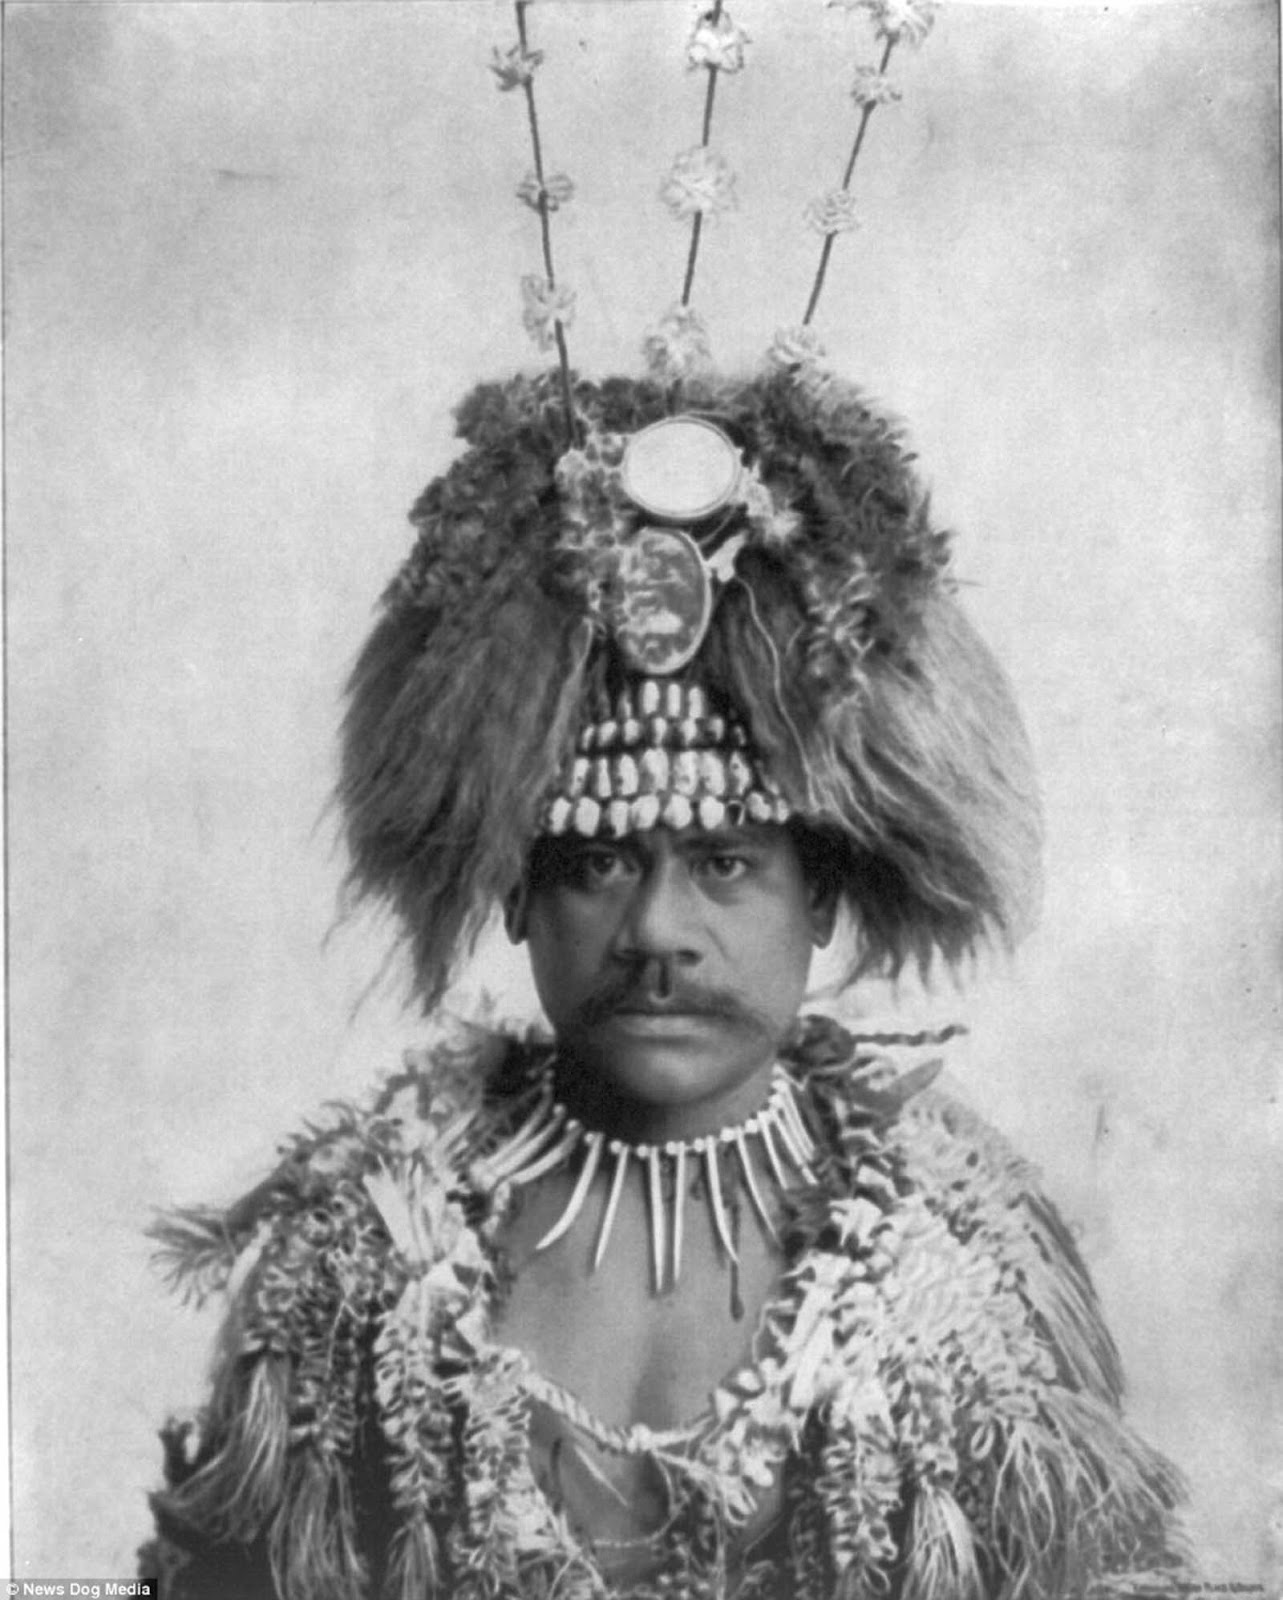 A head and shoulders photo shows a man in native headgear and dress at the World's Columbian Exposition in Chicago, Illinois in about 1893.